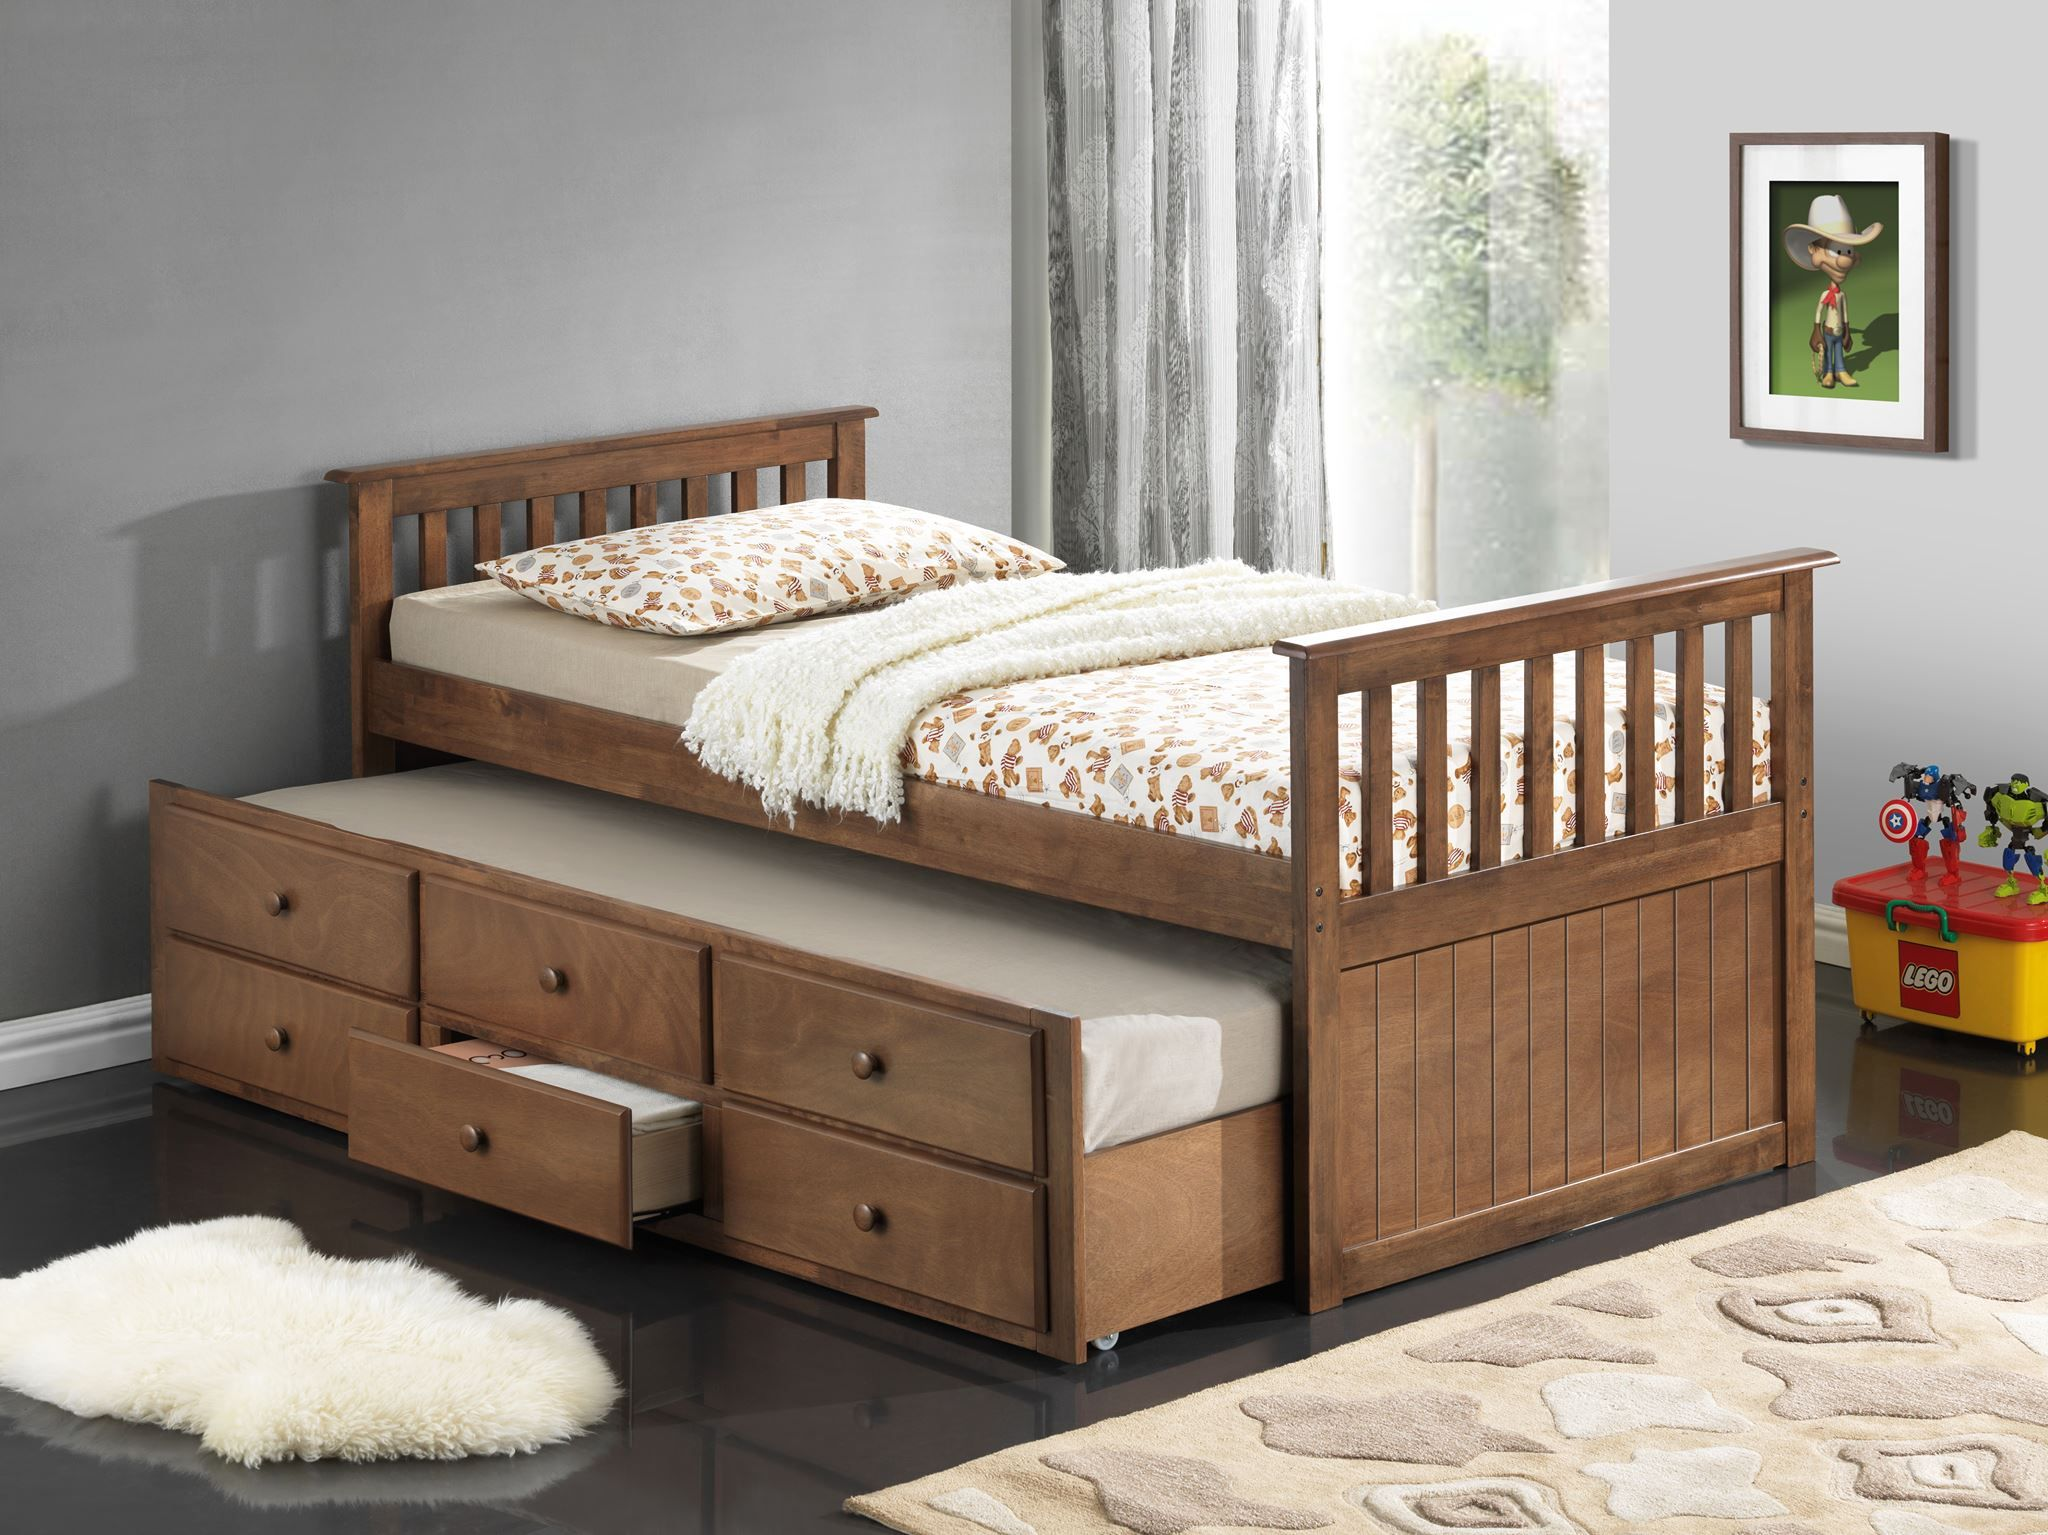 broyhill kids marco island bed with trundle bed and drawers dove brown - Kids Trundle Beds